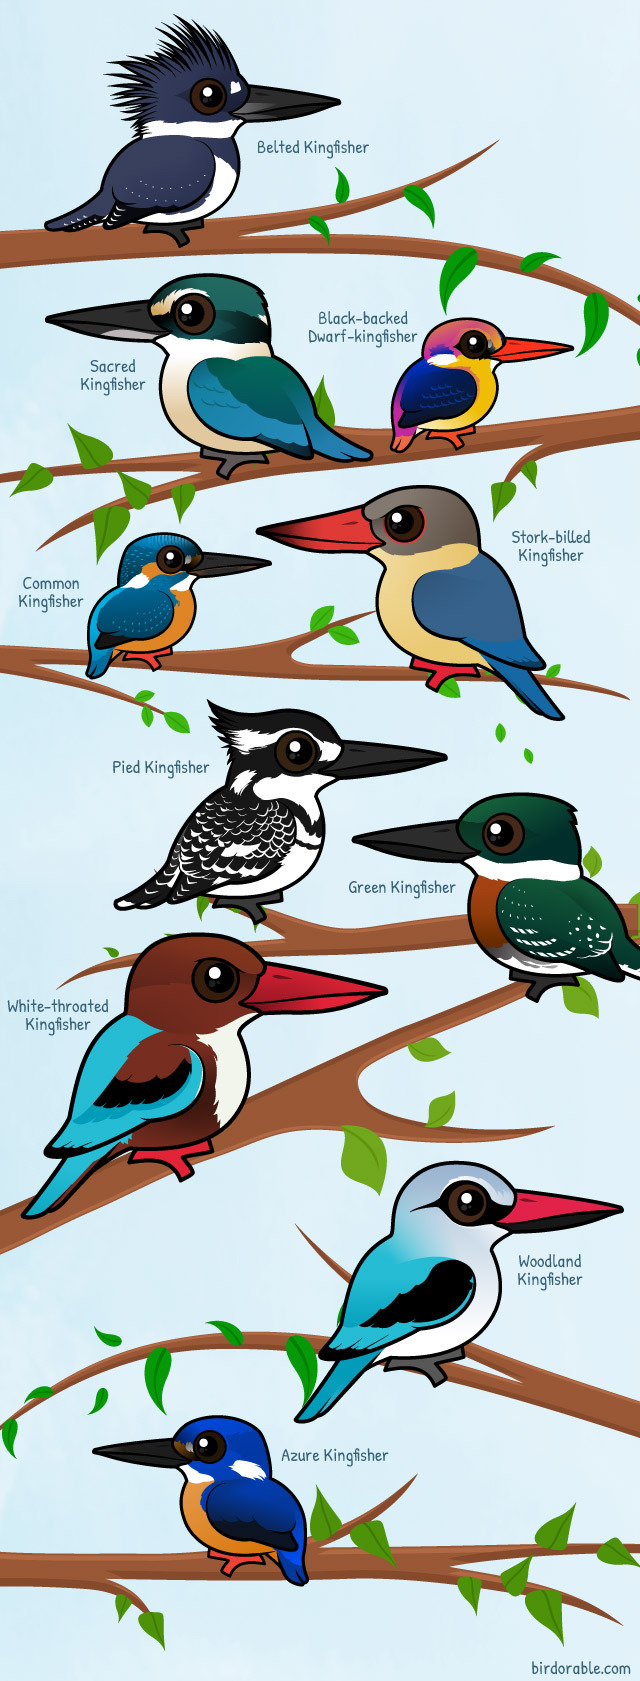 Woodland Kingfisher clipart #9, Download drawings